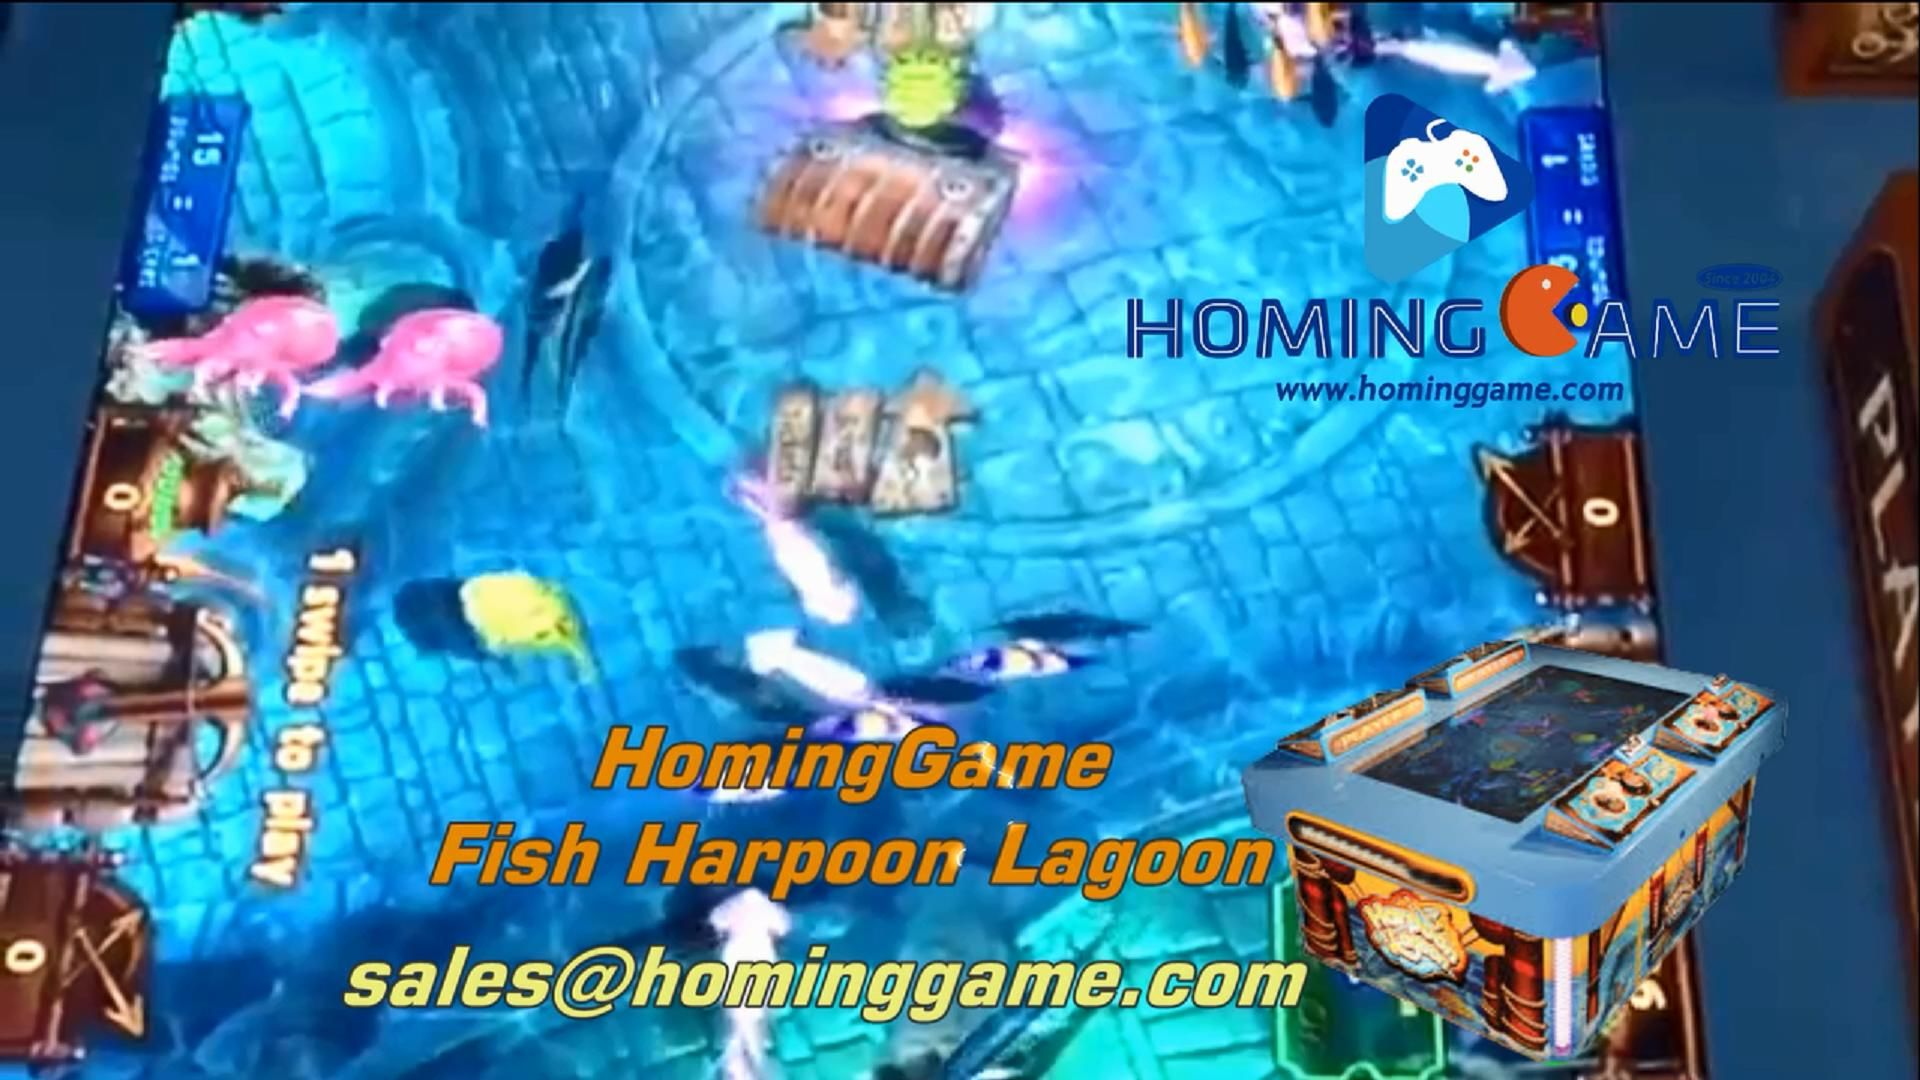 2019 Hominggame Fish Harpoon Lagoon Fishing Redemption Game